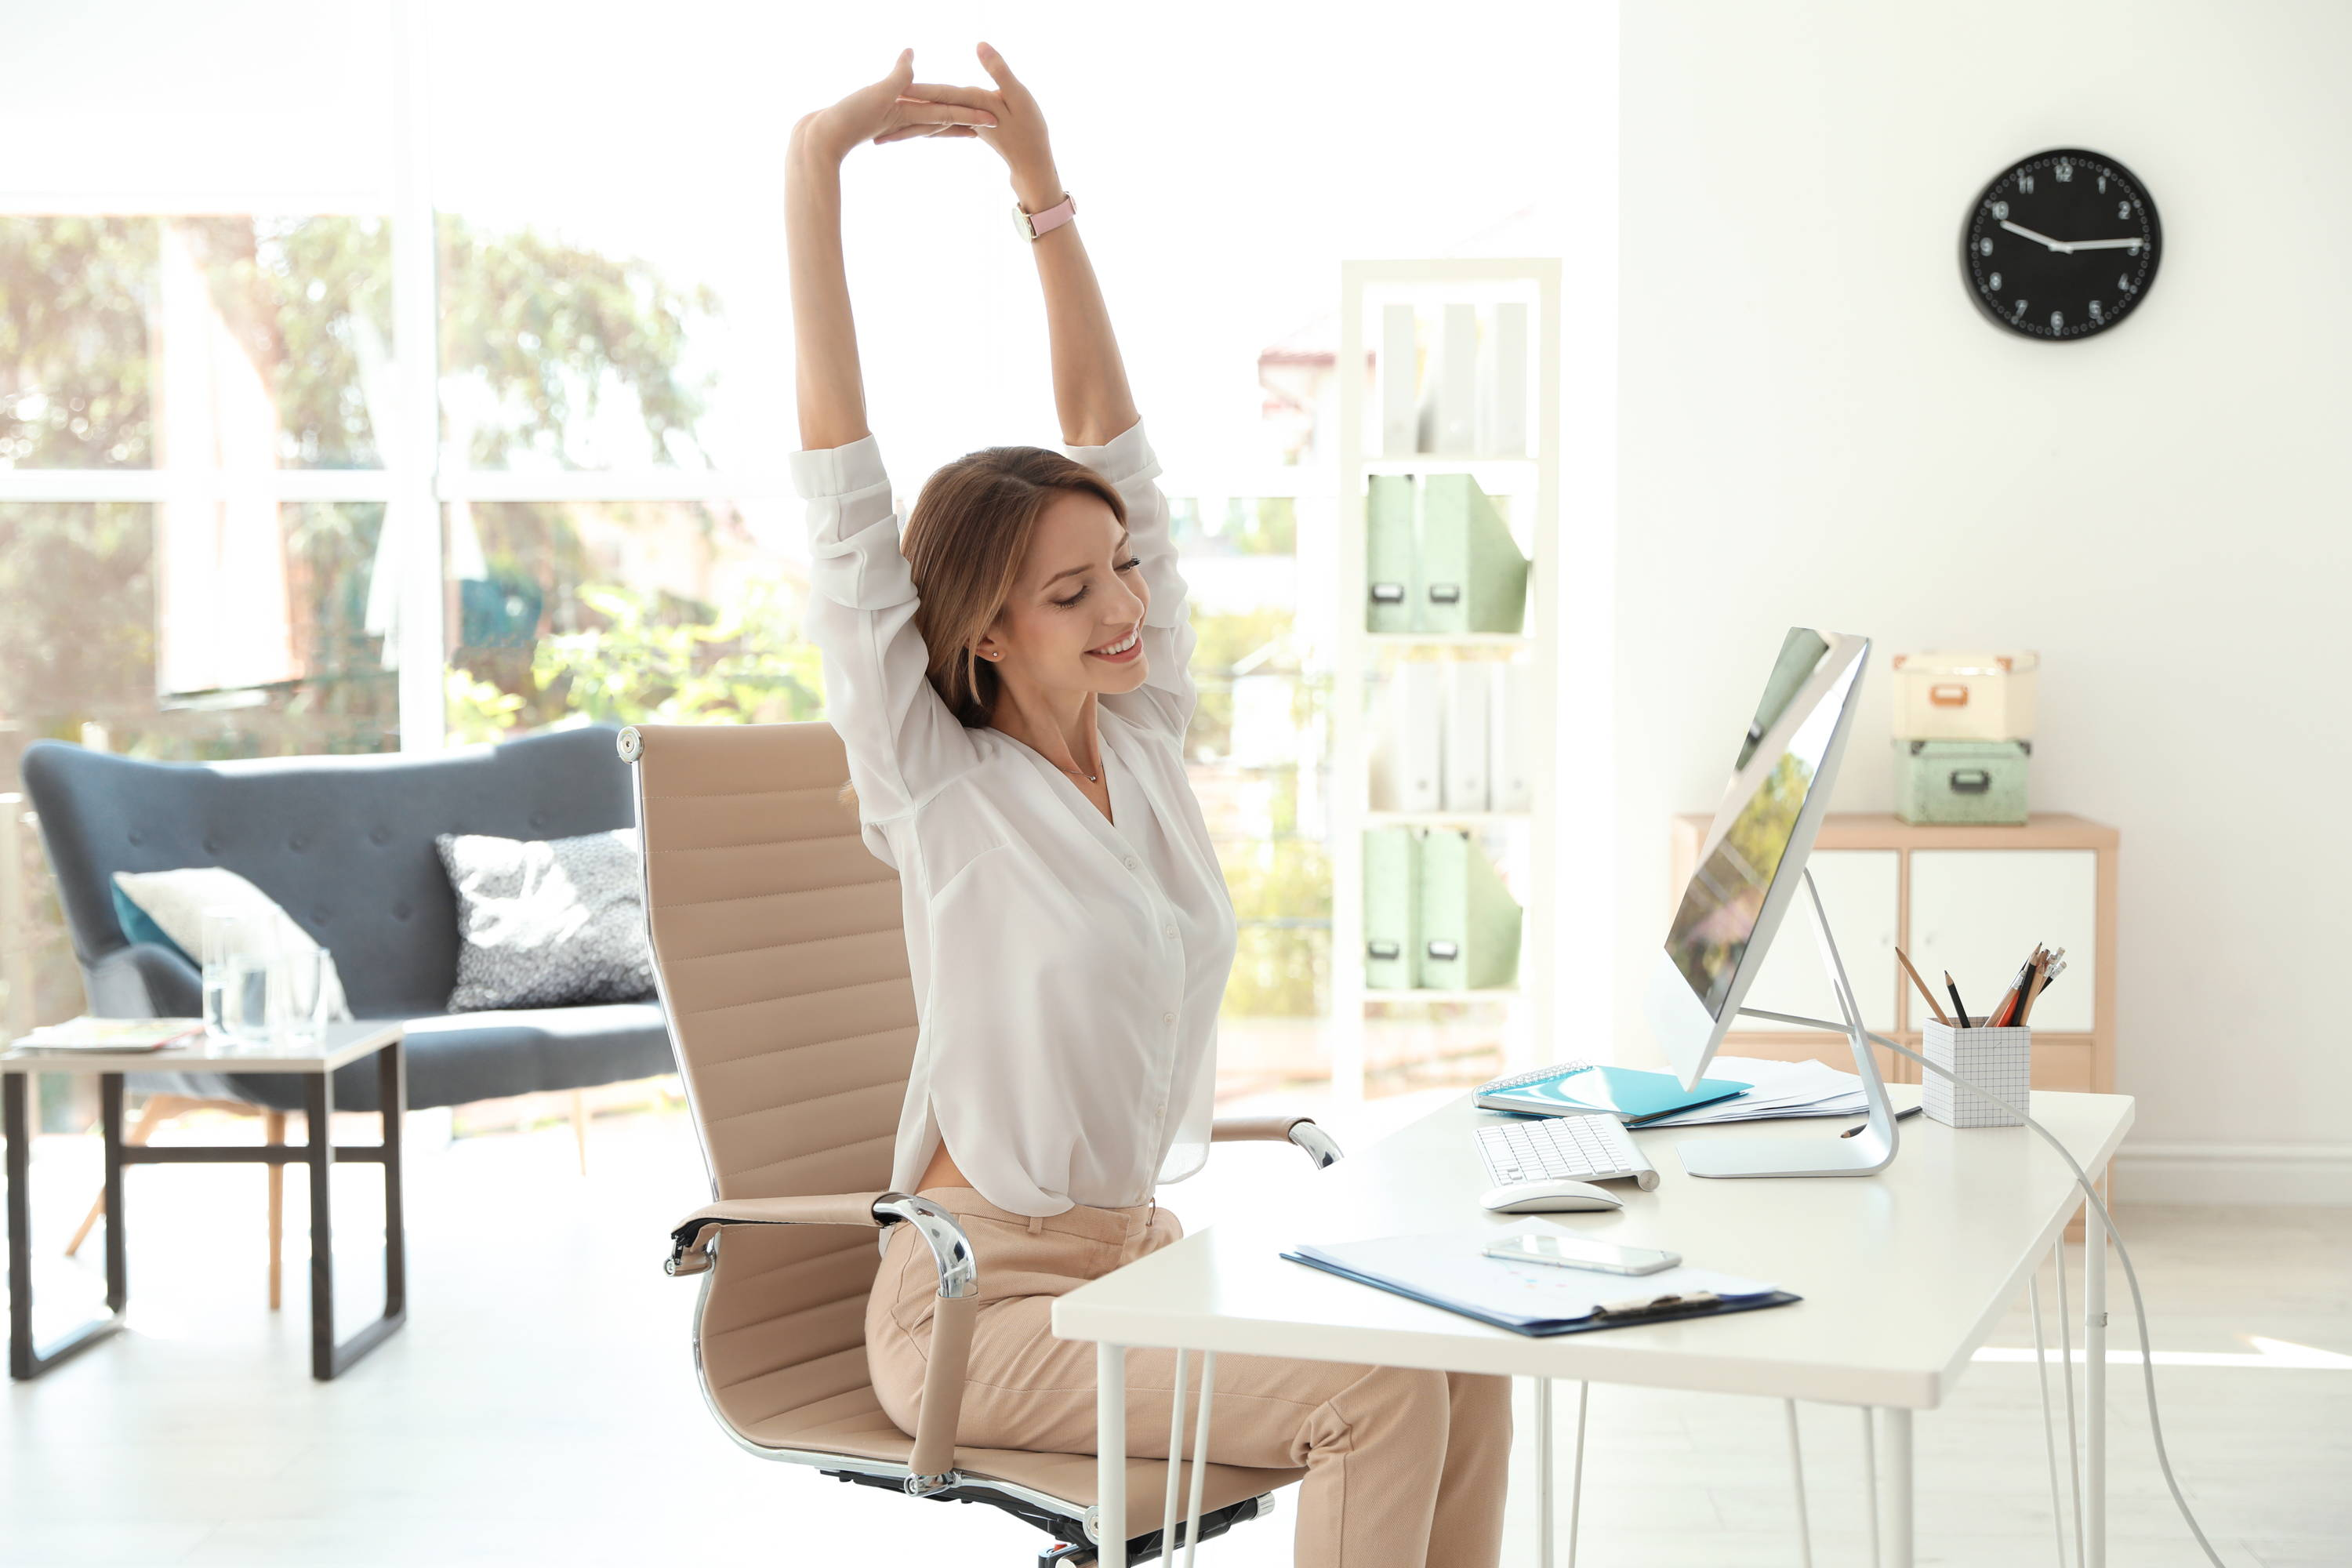 Woman at desk stretching her clasps hands upward .